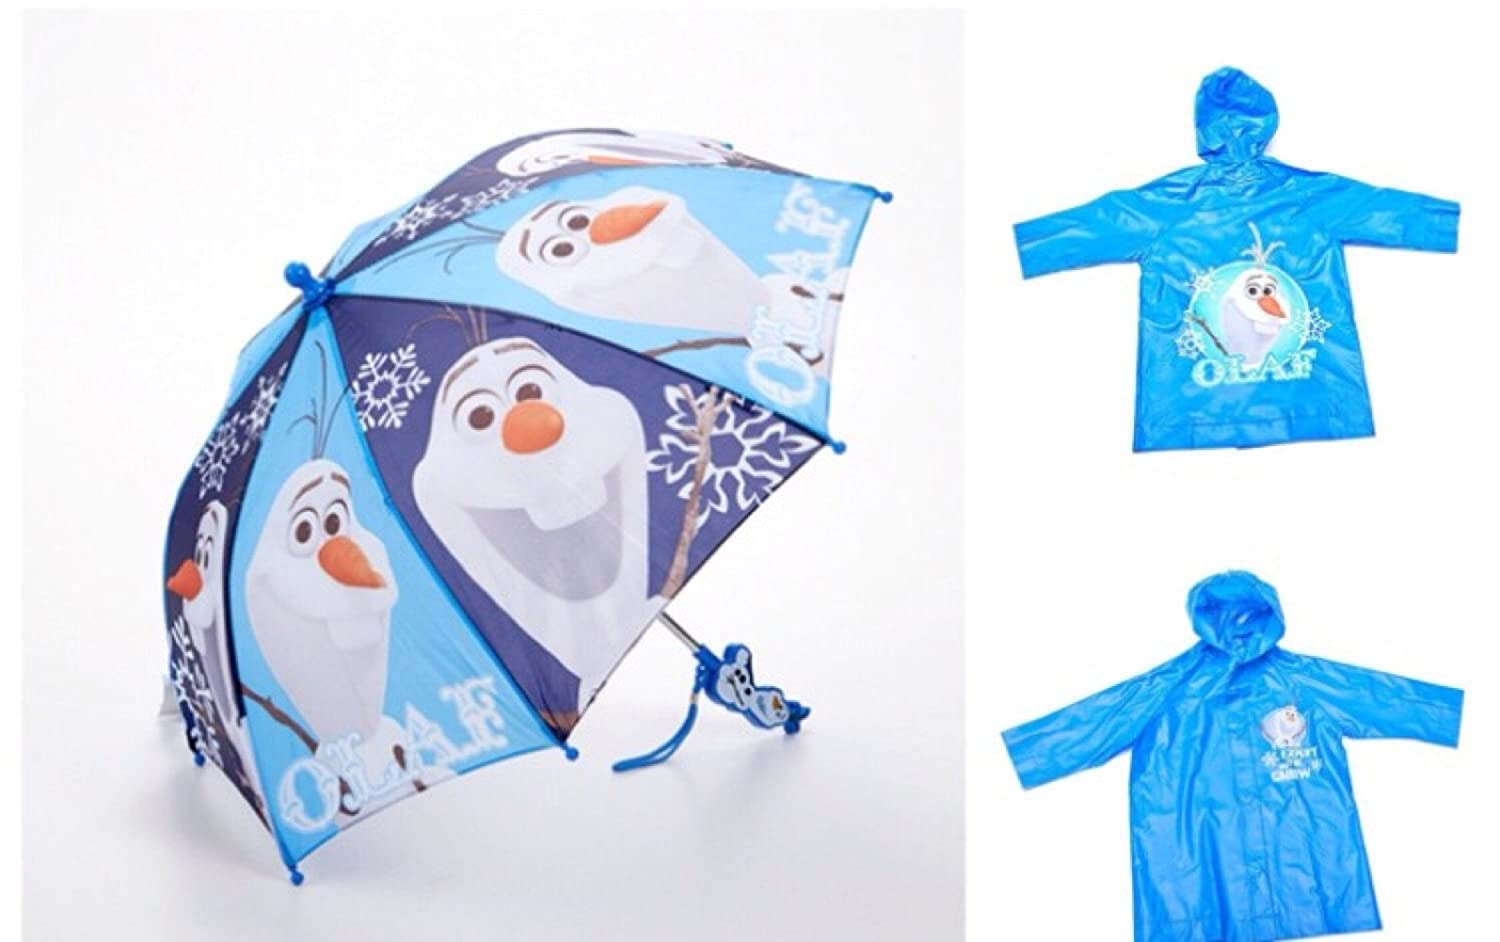 Disney Frozen Olaf Childrens 2 Piece Umbrella Rain Poncho Set - Large 6/7 large double layers folding umbrella windproof rain gear